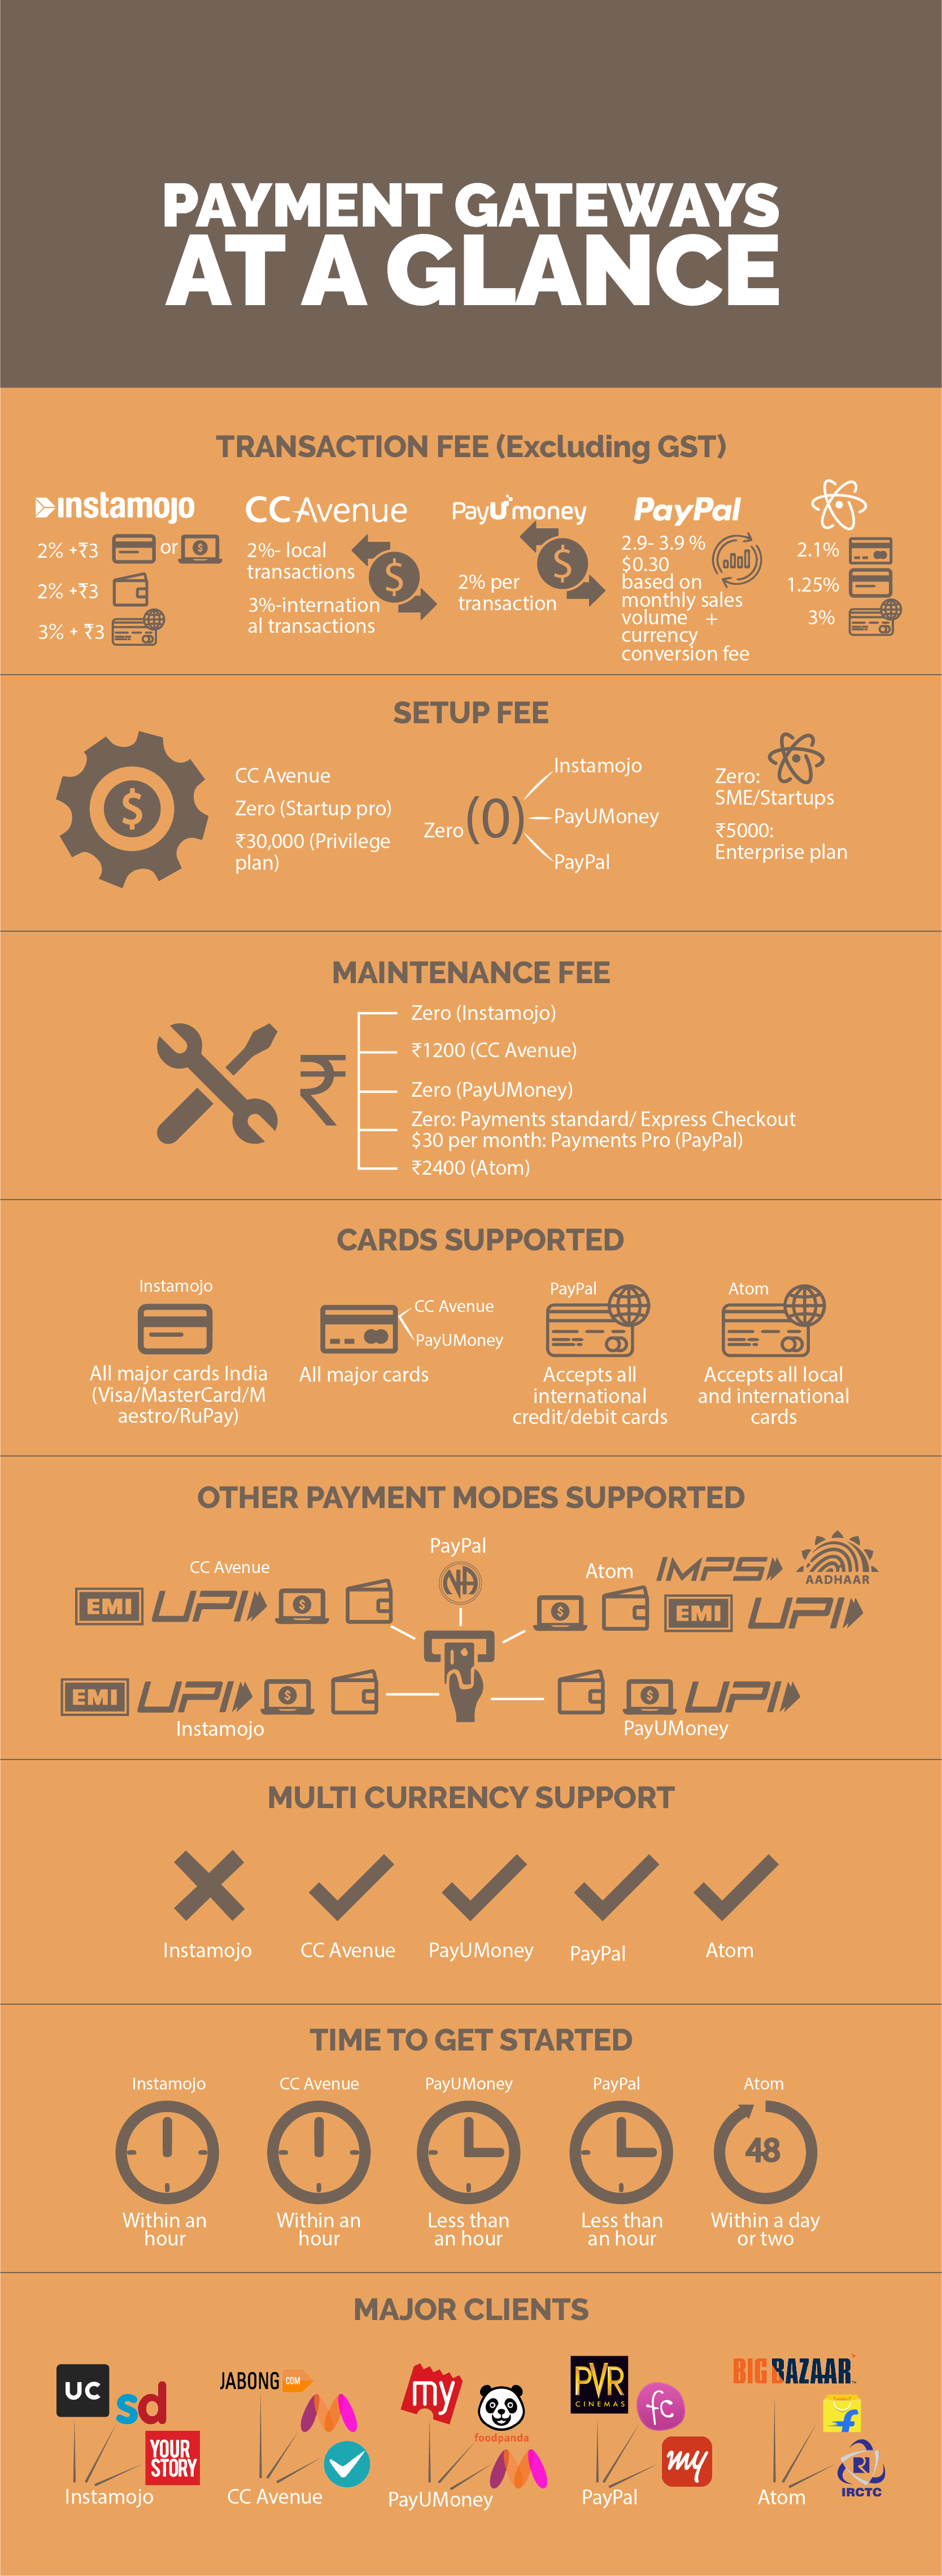 Payment gateway comparison India